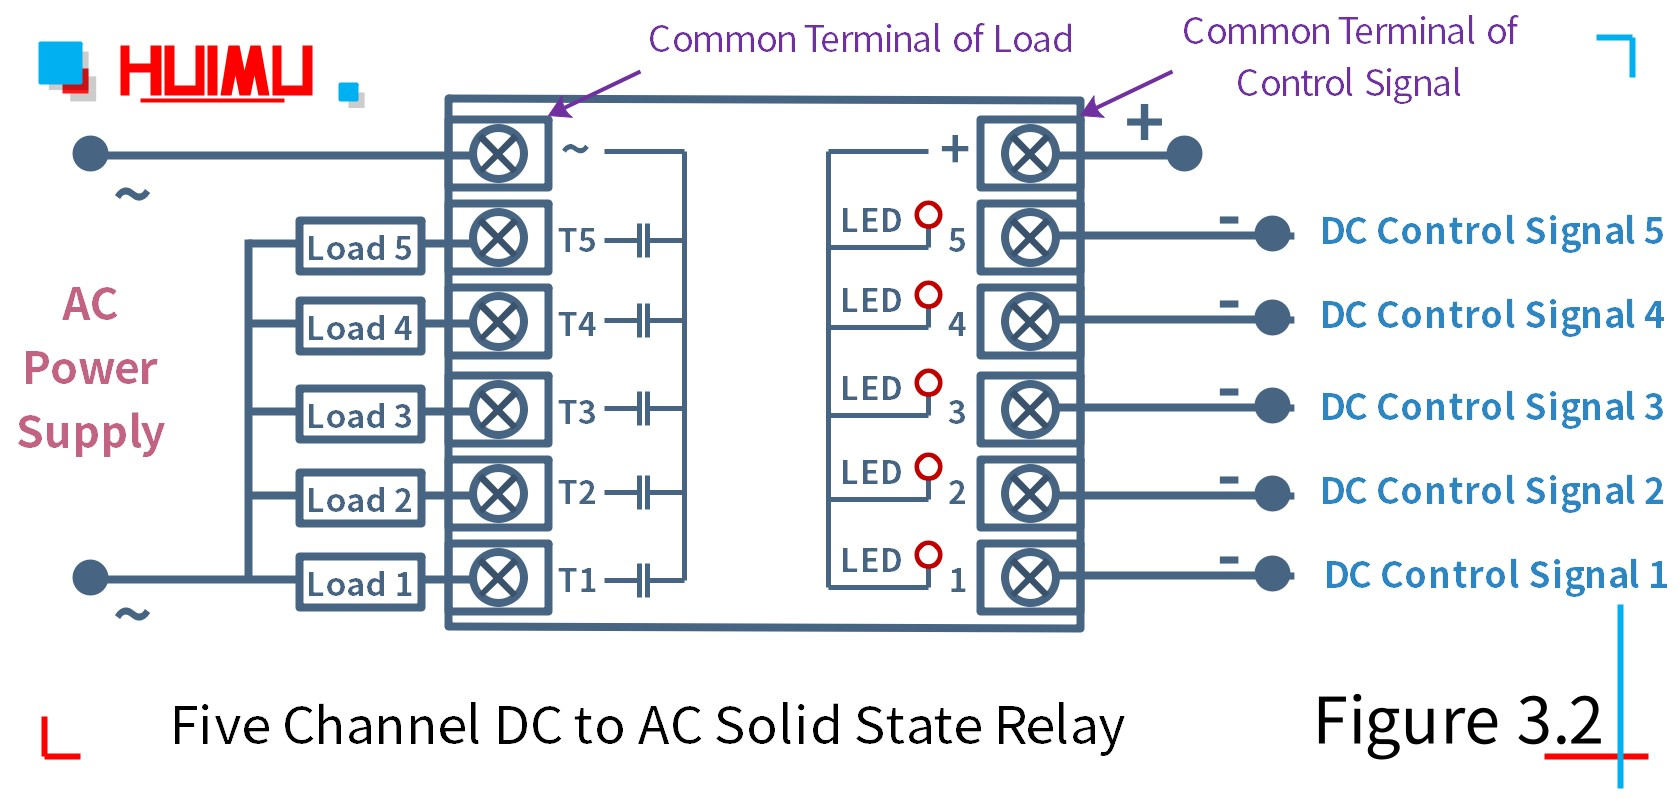 How to wire MGR mager PN5-10DA five channel dc to ac solid state relay?